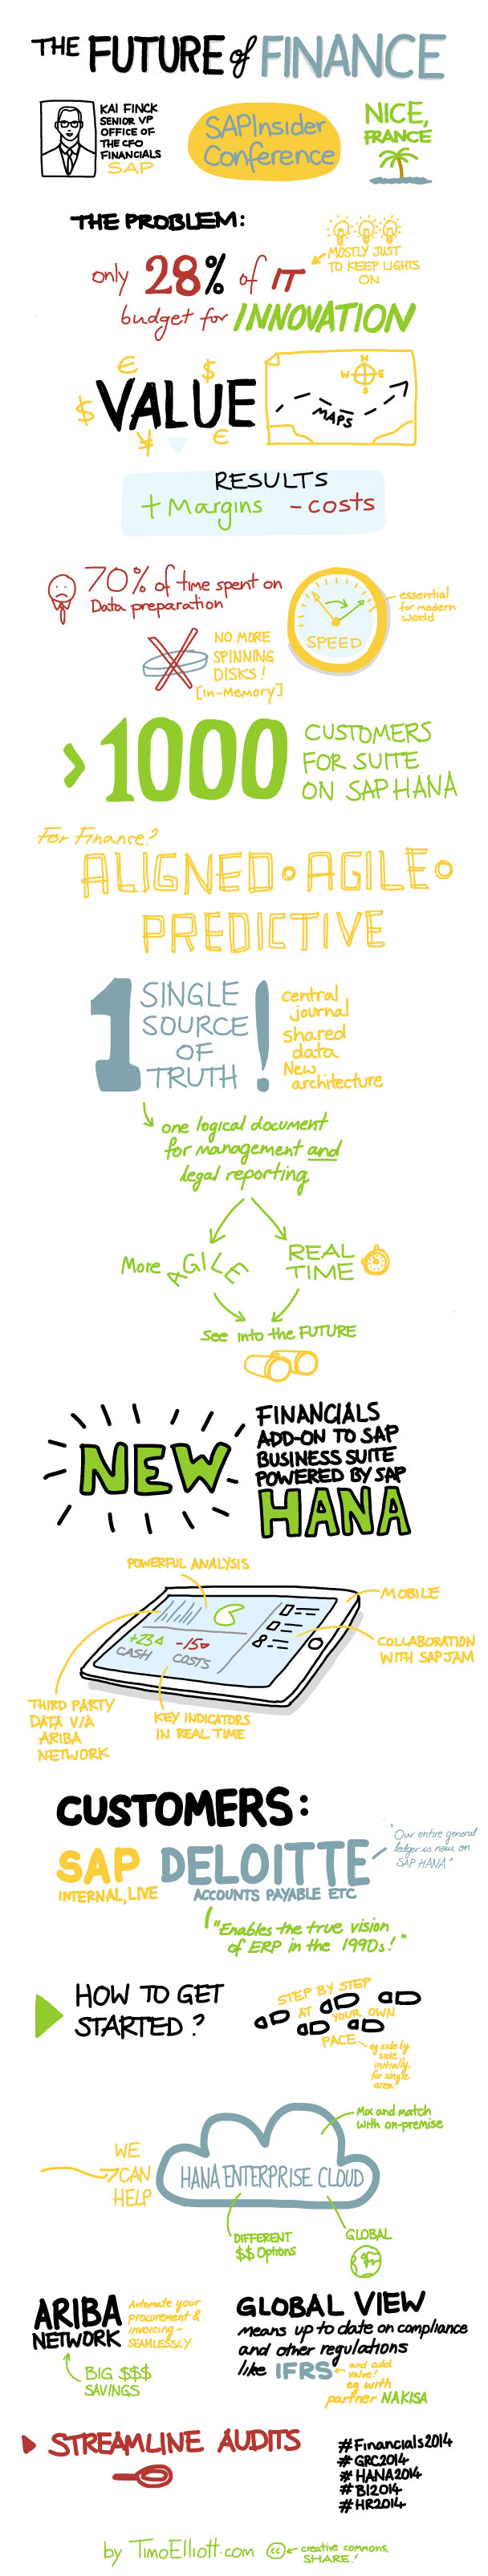 financials-2014-keynote-sketchnote-long